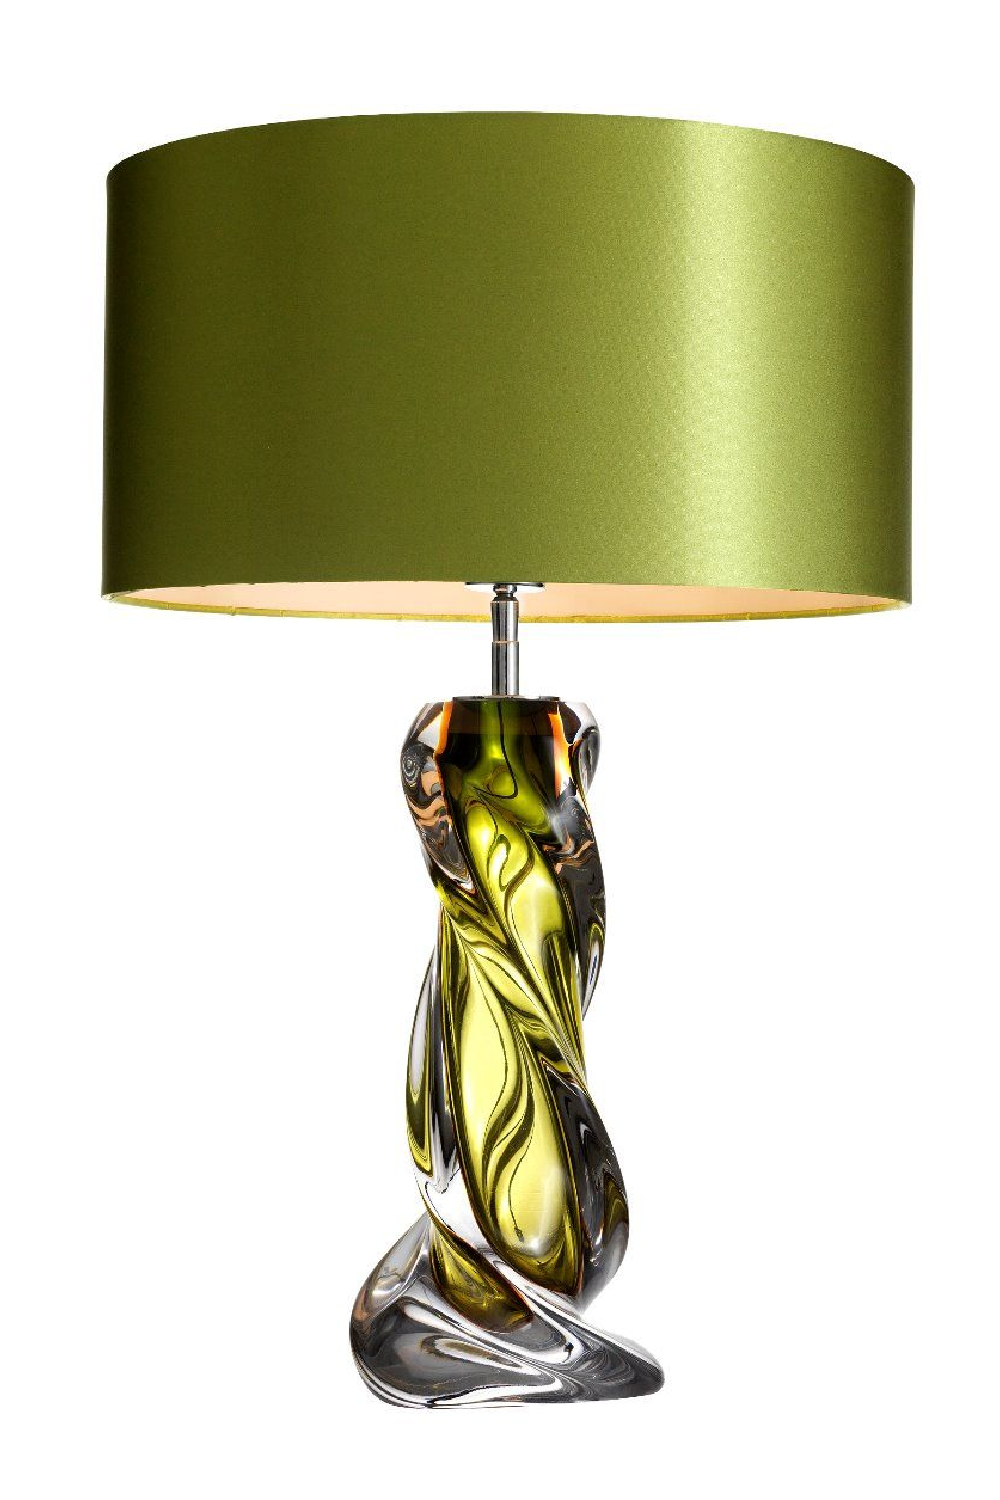 Green Blown Glass Table Lamp | Eichholtz Carnegie